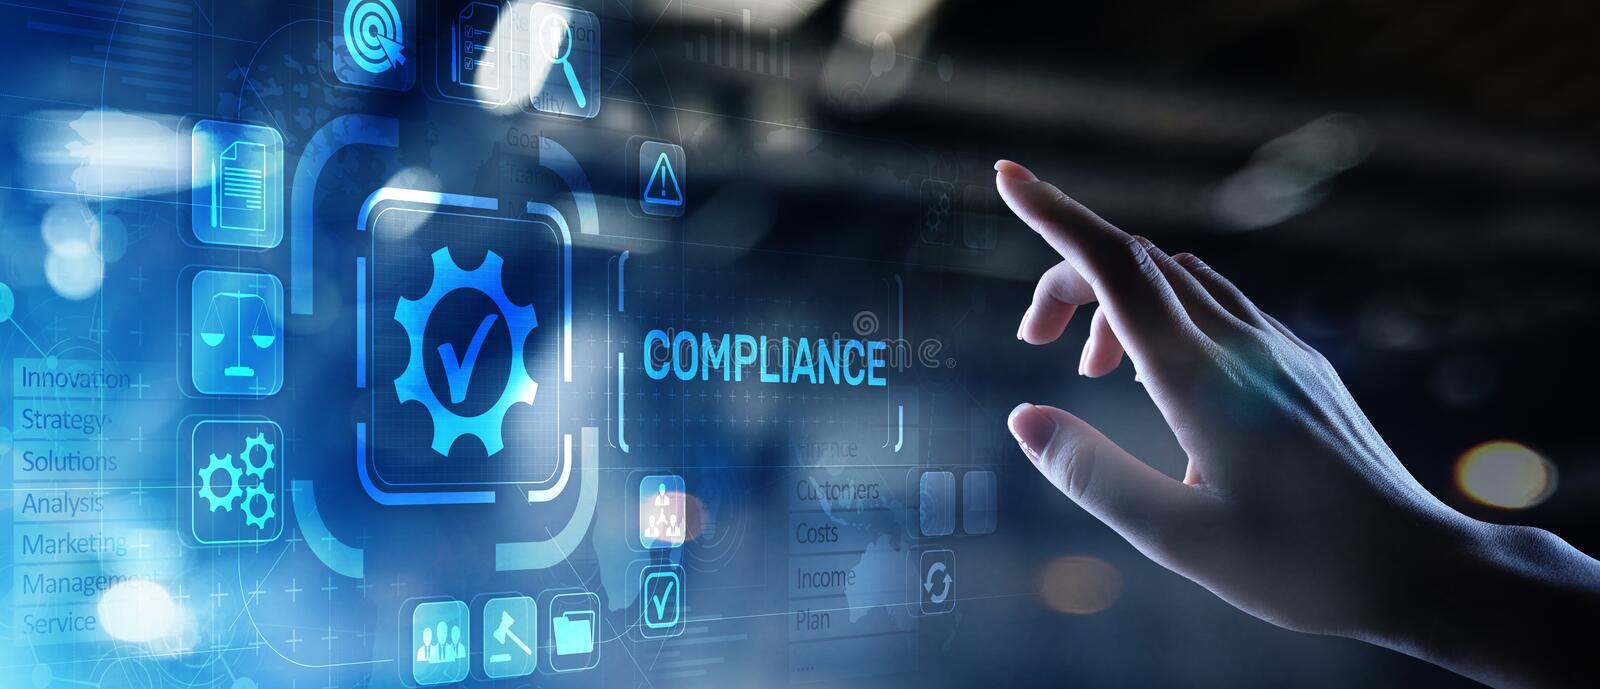 Compliance concept with icons and text. Regulations, law, standards, requirements, audit diagram on virtual screen. Compliance concept with icons and text stock image